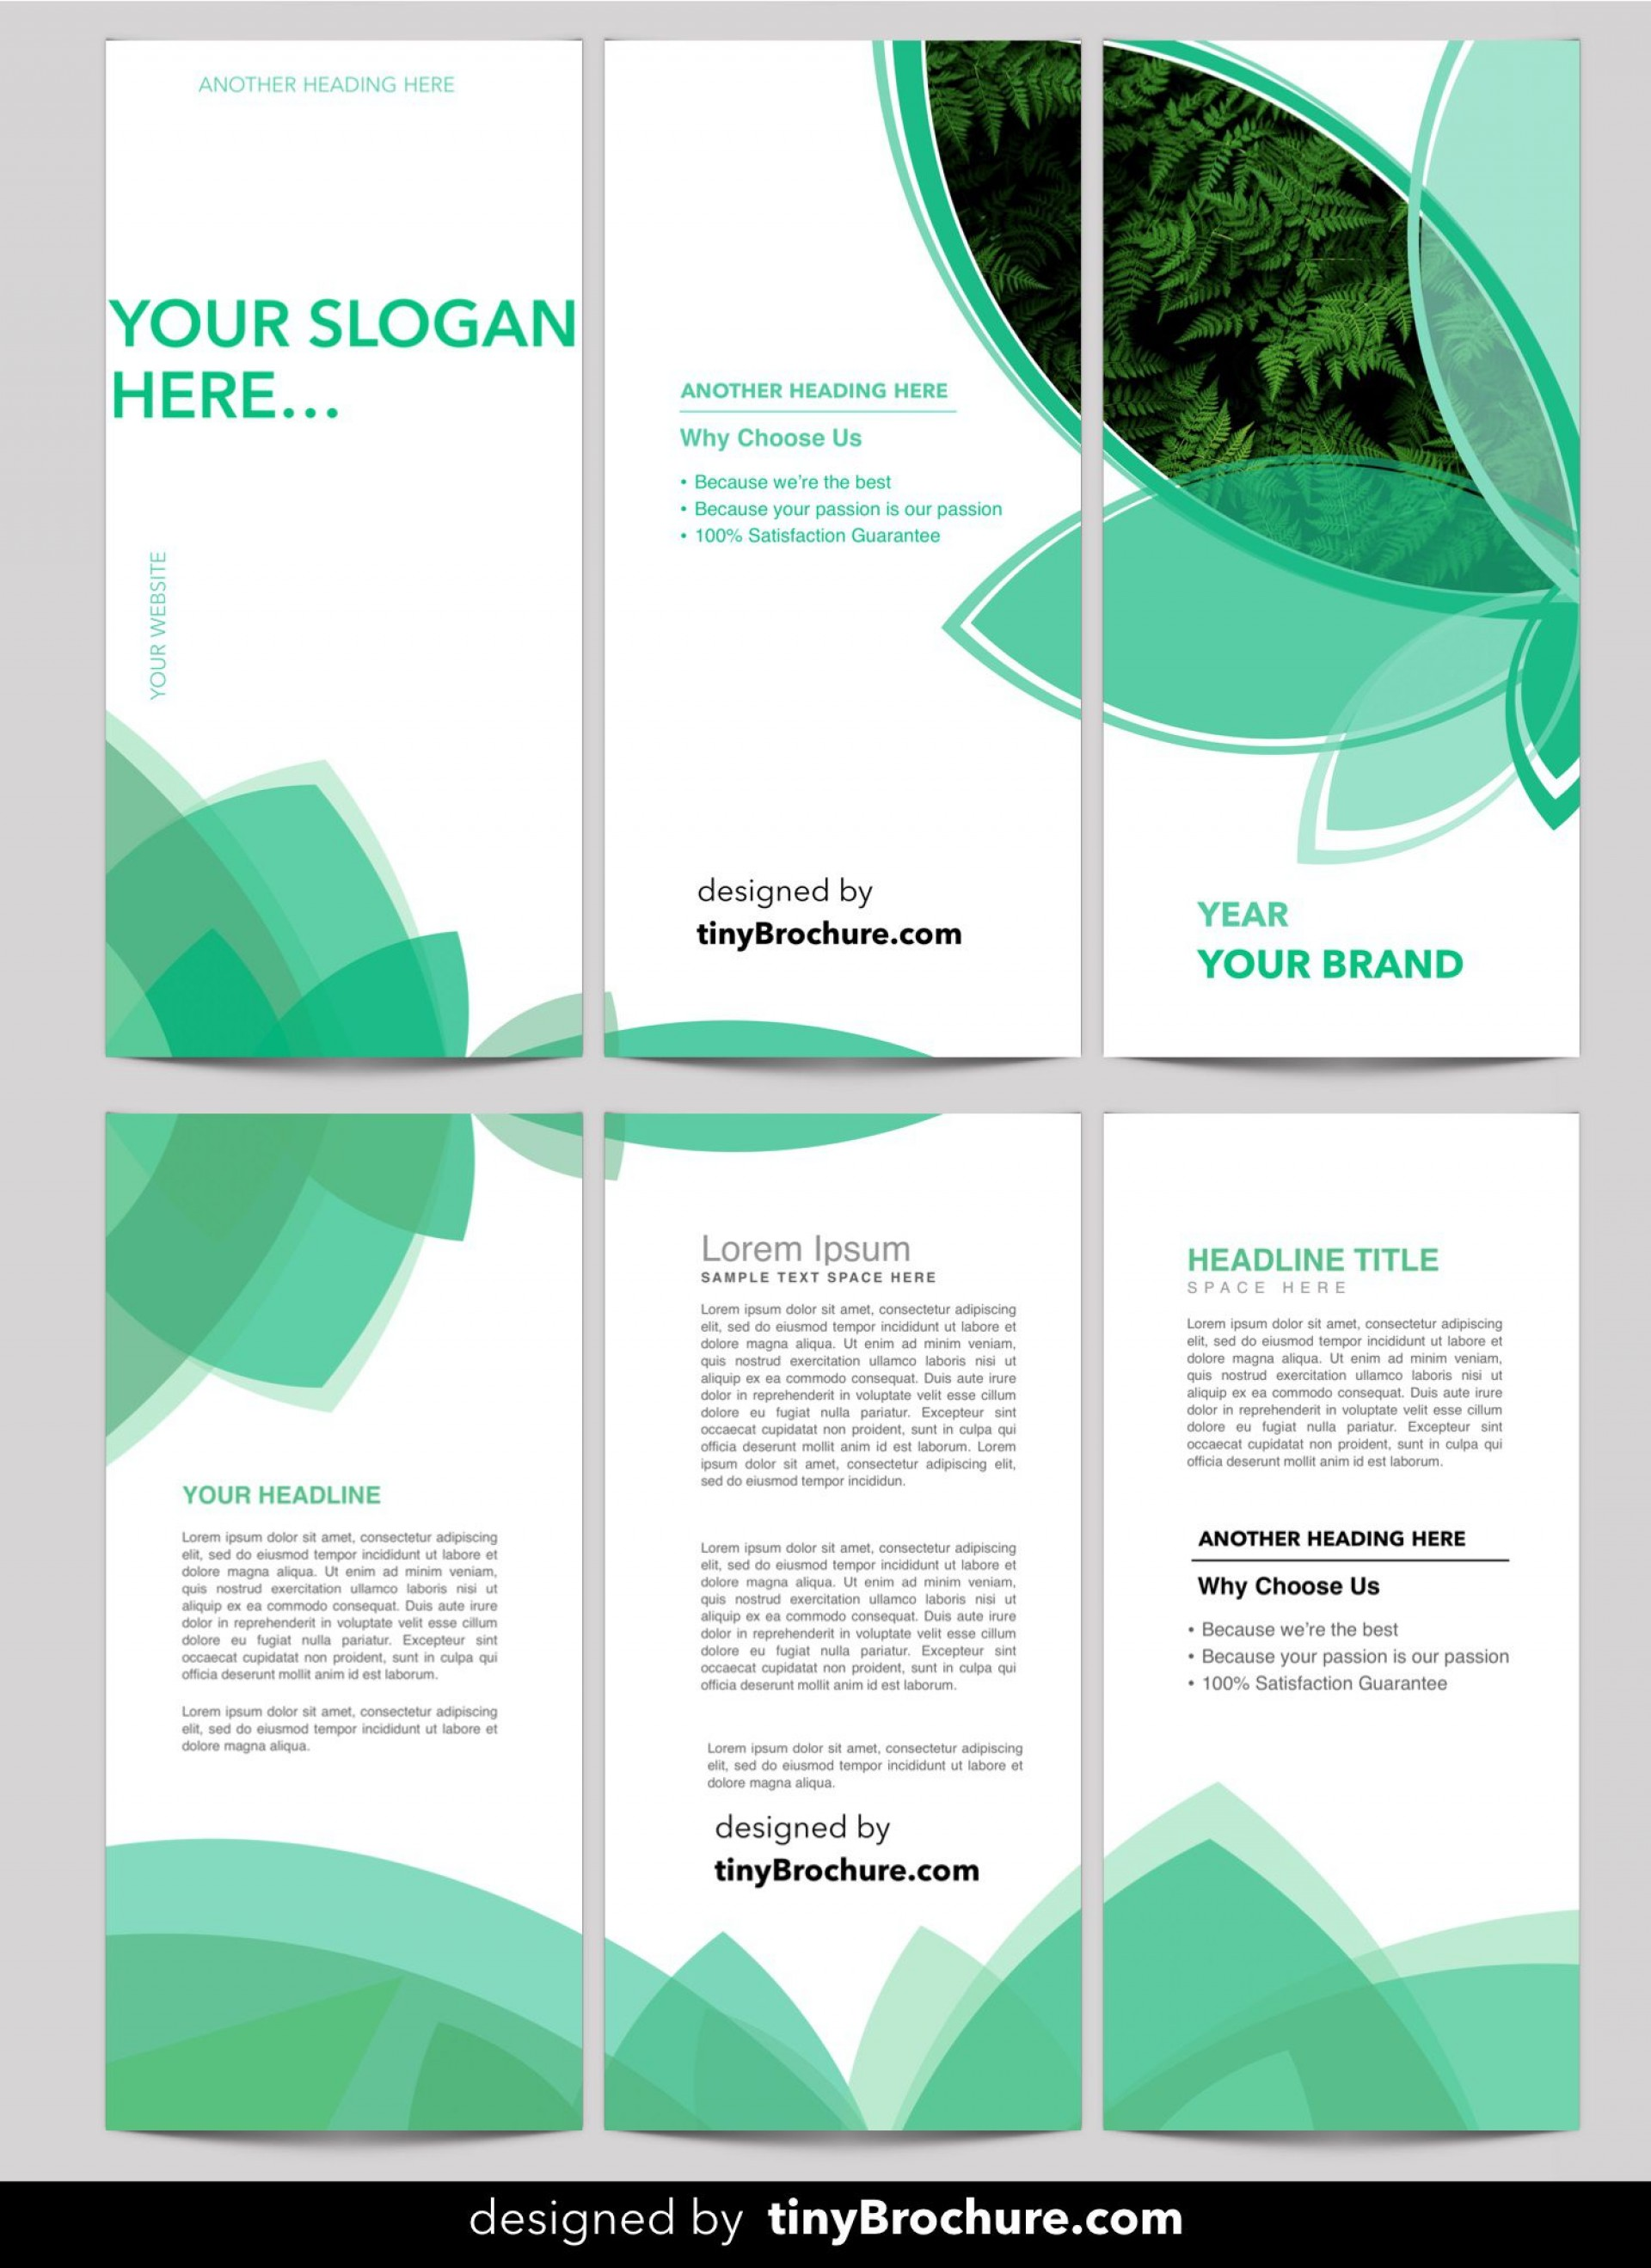 001 Dreaded Download Template For Word Concept  Wordpres Free Resume 2007 Addres Label1920